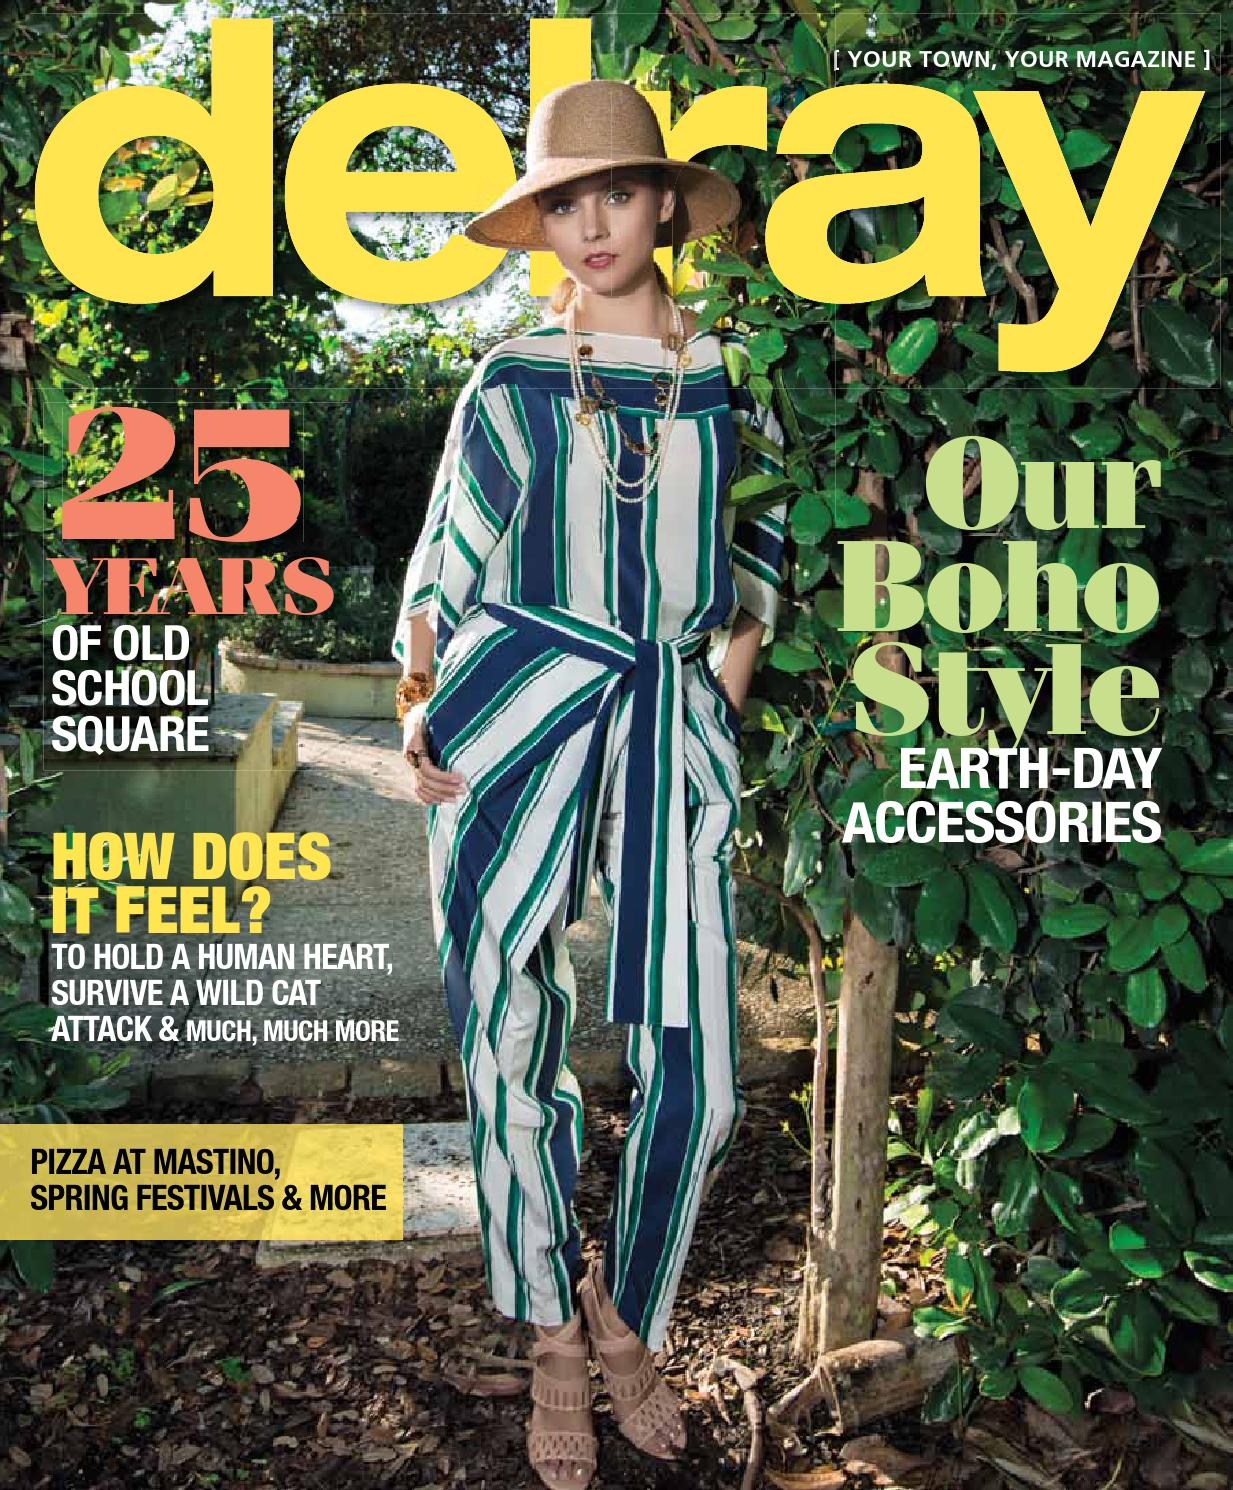 Delray Beach magazine March/April 2015 by JES Publishing - issuu